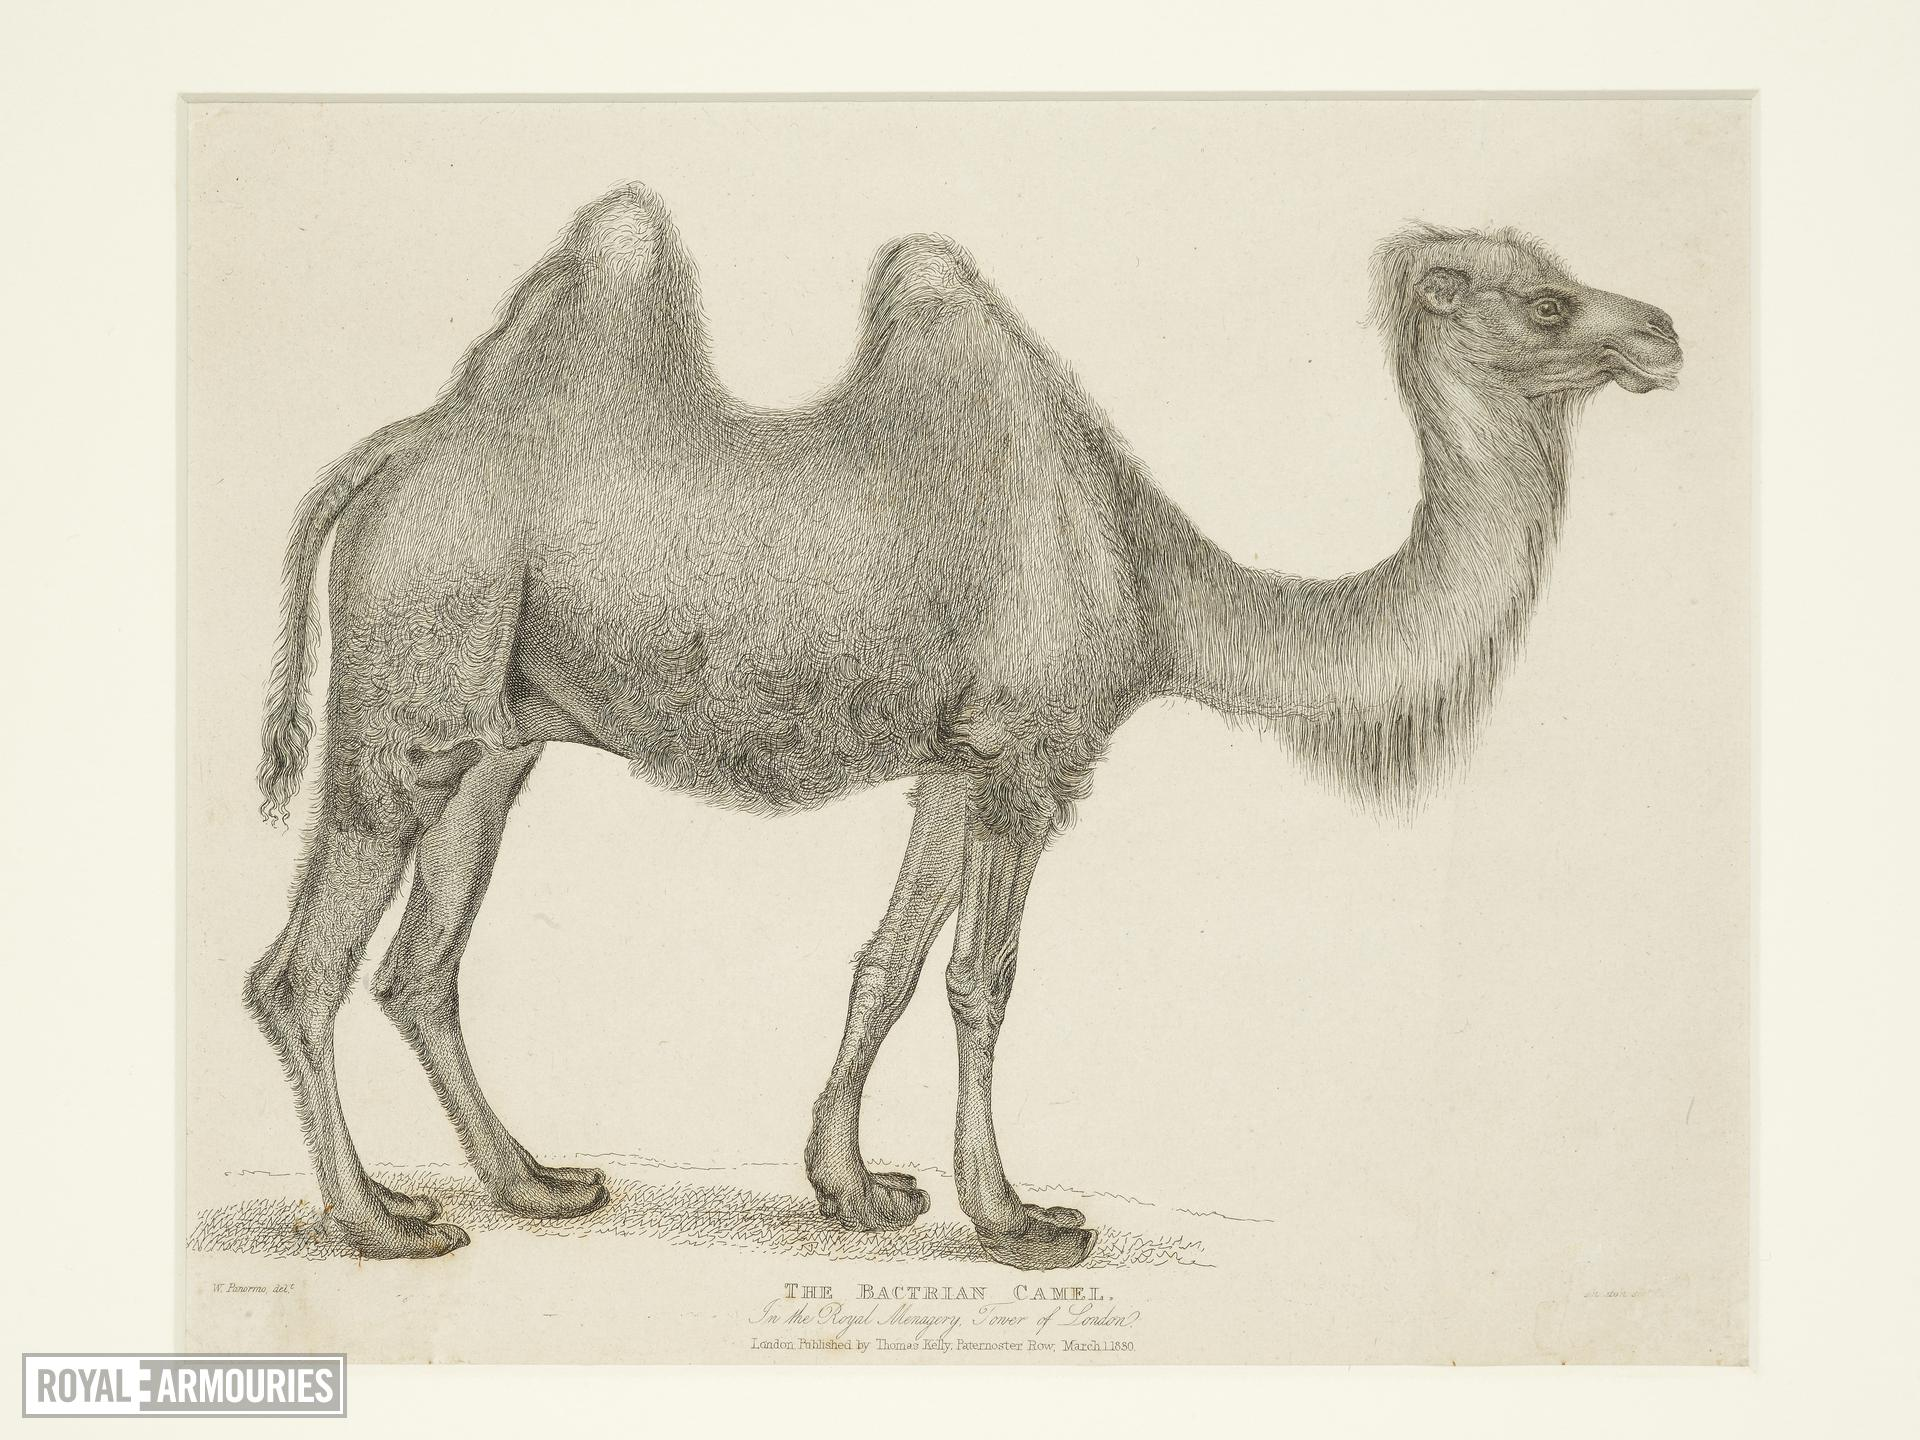 Print Entitled 'The Bactrian Camel in the Royal Menagery, Tower of London', dated 1 March, 1830.